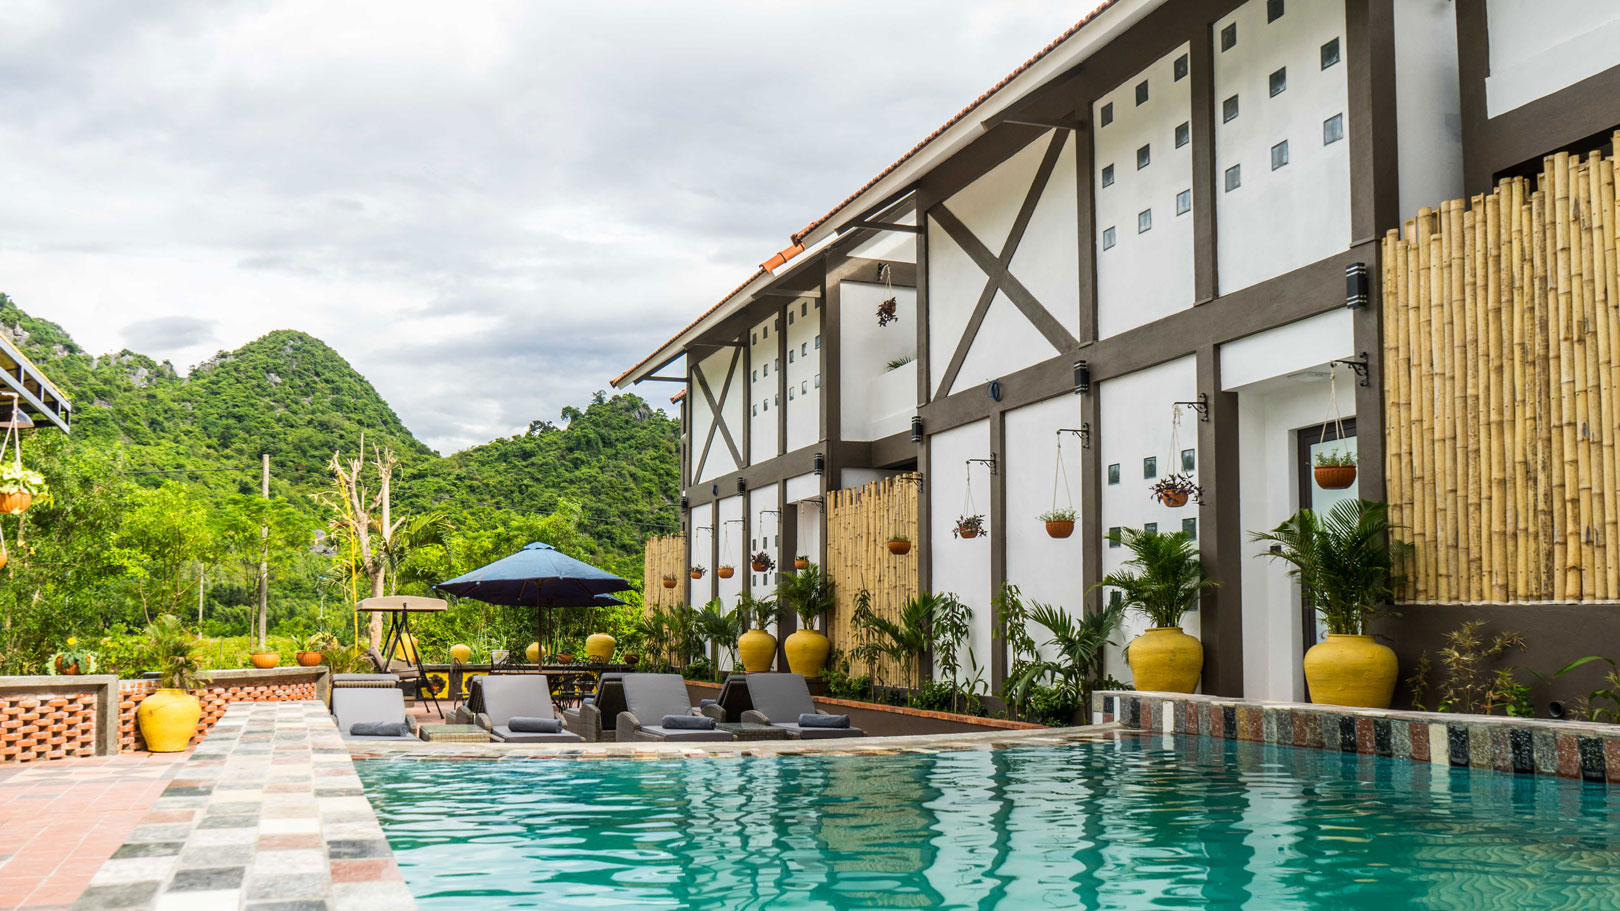 Victory Road Villas in Phong Nha, Vietnam: luxurious accommodation, with a swimming pool, sauna, full bar, tasty Western food and top-quality tours, activities, and entertainment.